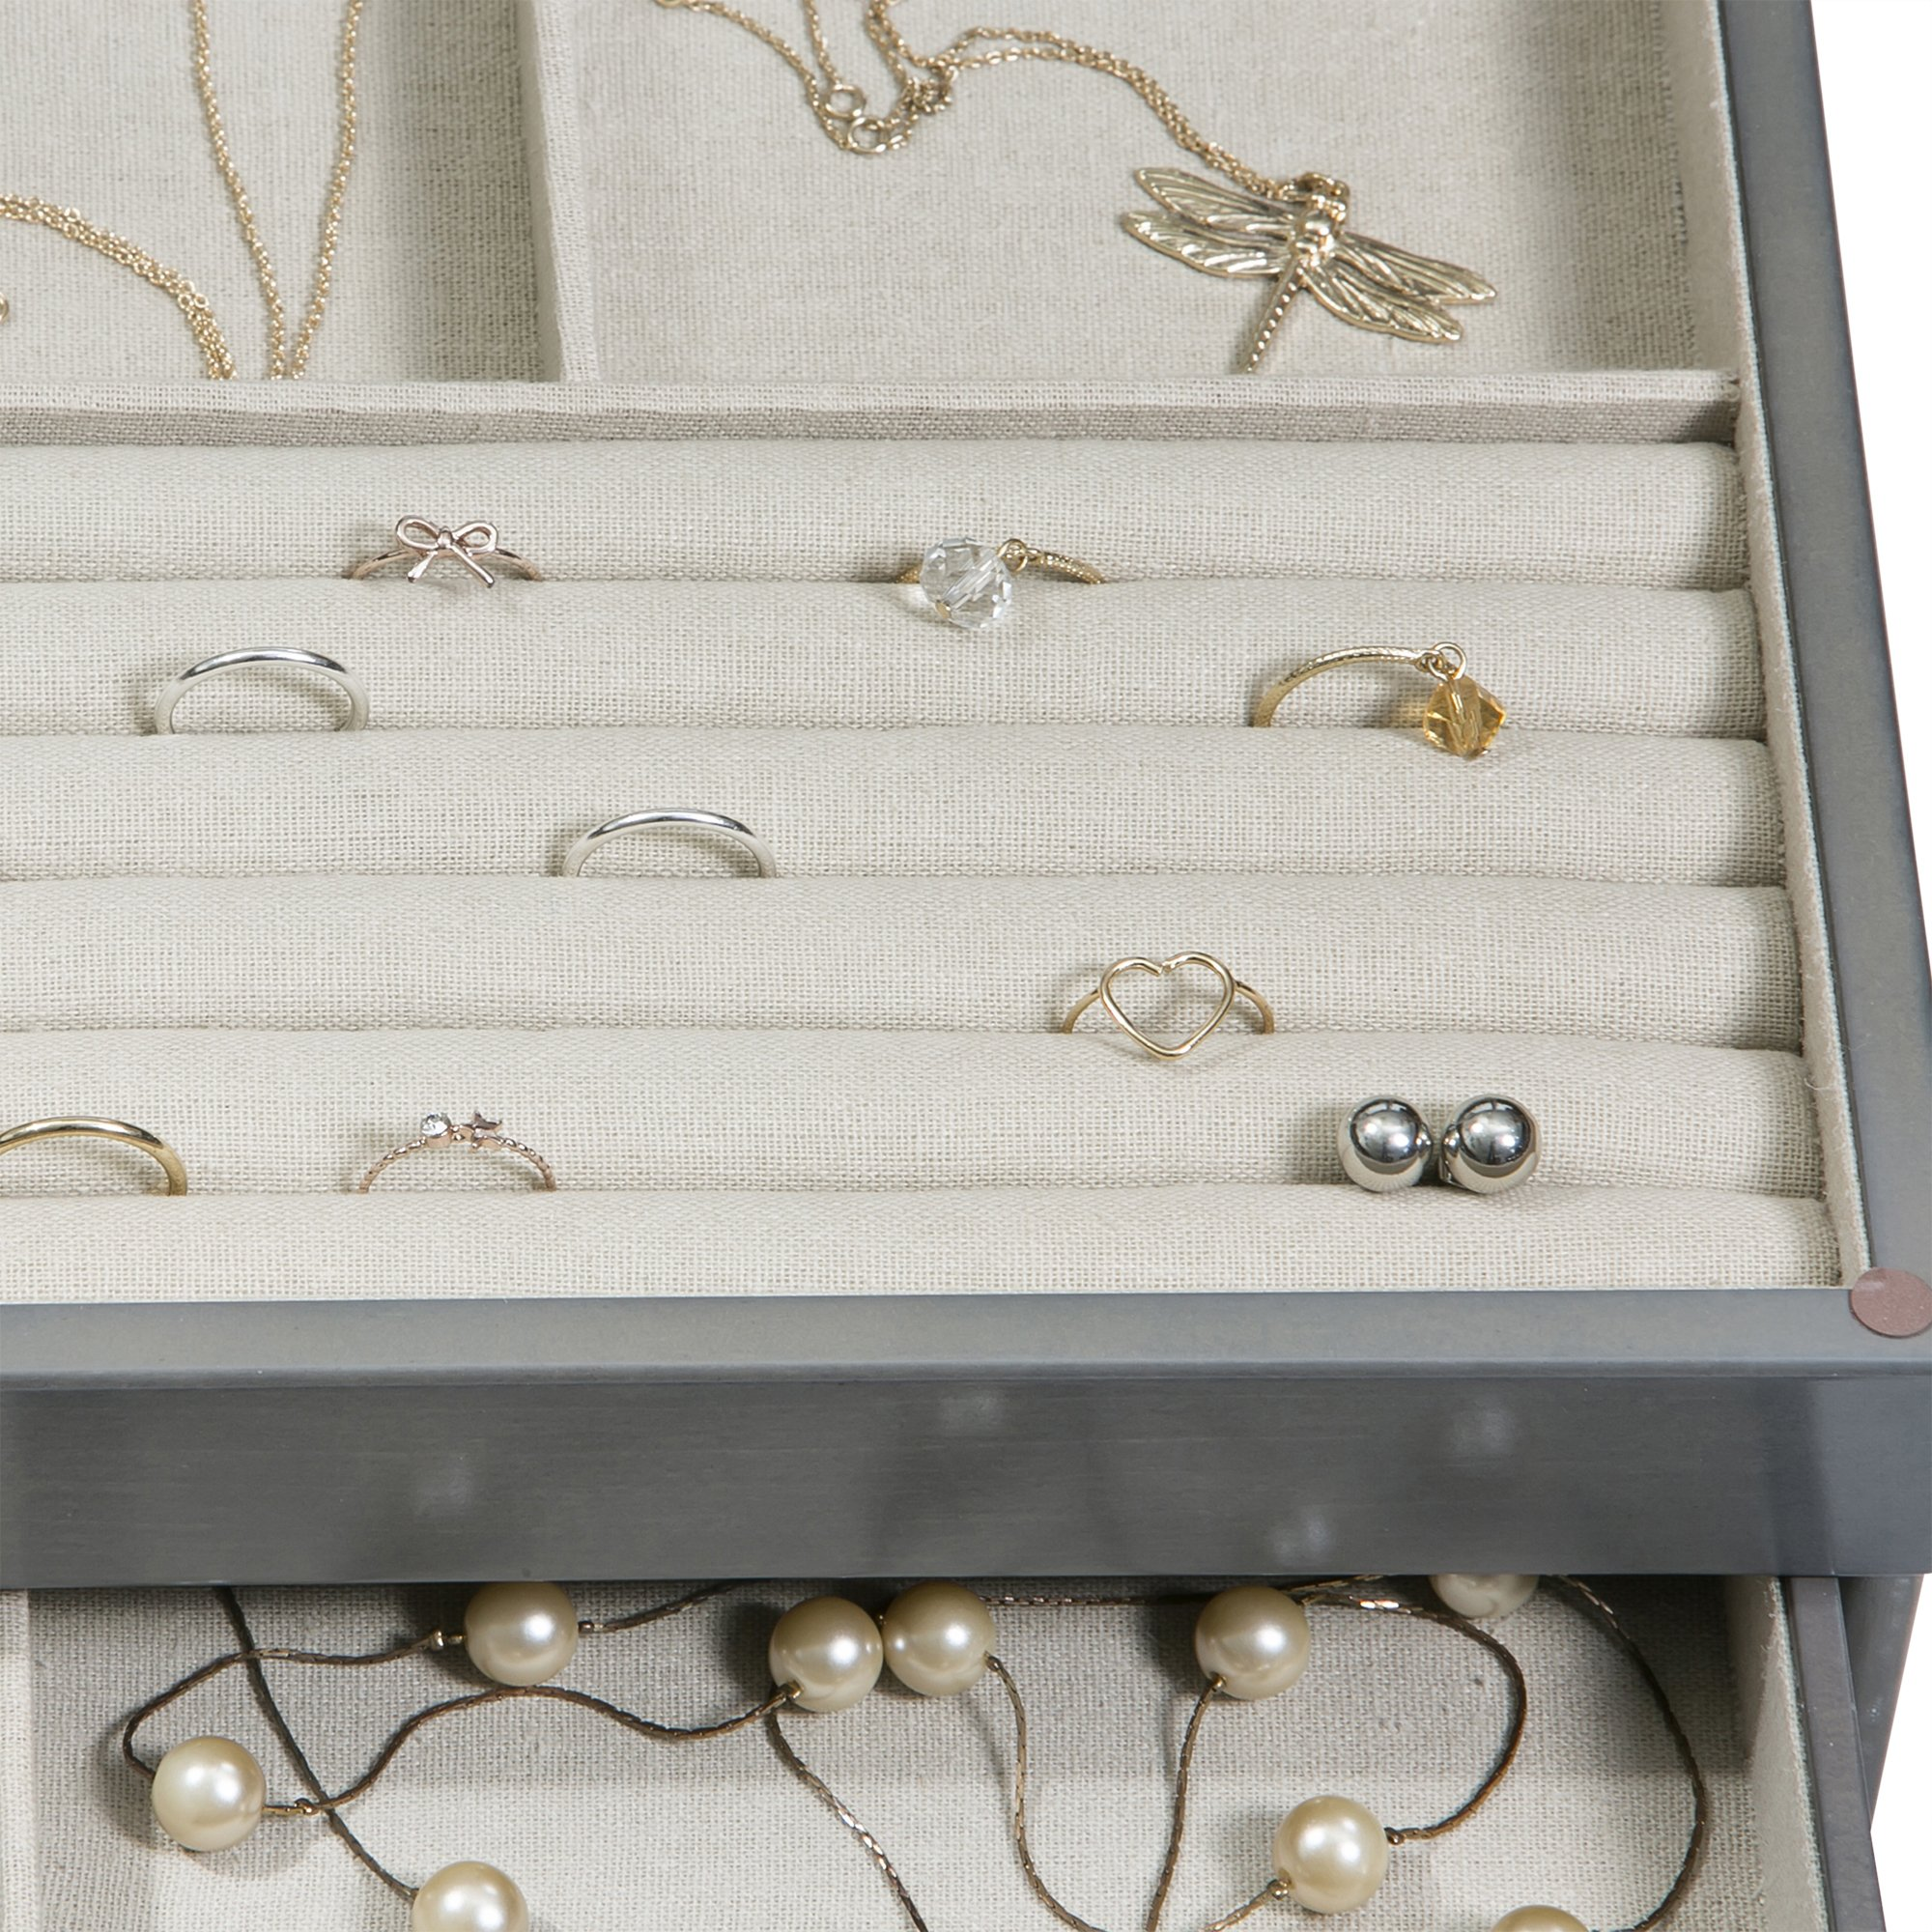 Mele & Co. Misty Glass Top Wooden Jewelry Box (Oceanside Grey Finish) by Mele & Co. (Image #7)